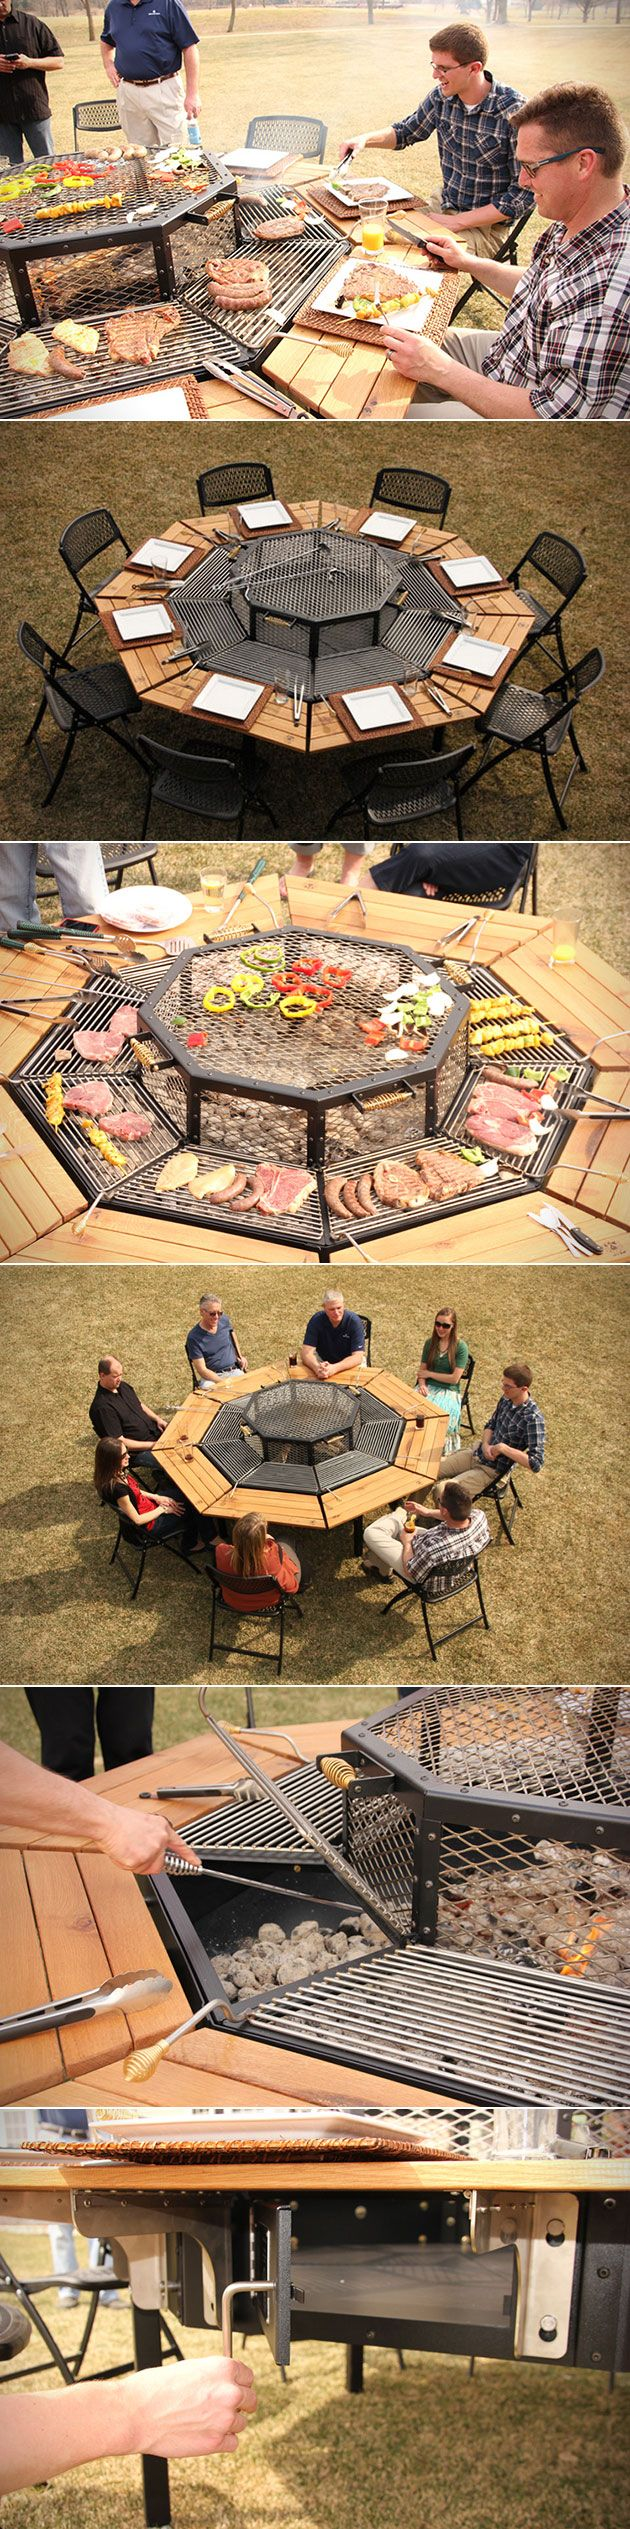 Nothing says summer quite like crowding around the barbecue with friends and family, and the Jag Grill looks to bring on a whole new meaning to the idea. Shaped like a giant octagon, the Jag is like a communal grilling station. Not only is there a massive grilling area in the center, but there are also eight different individual grilling stations for all your guests. In addition to the private grilling areas, there's also a wooden table-top to enjoy your barbecued meats and veggies. Just try…